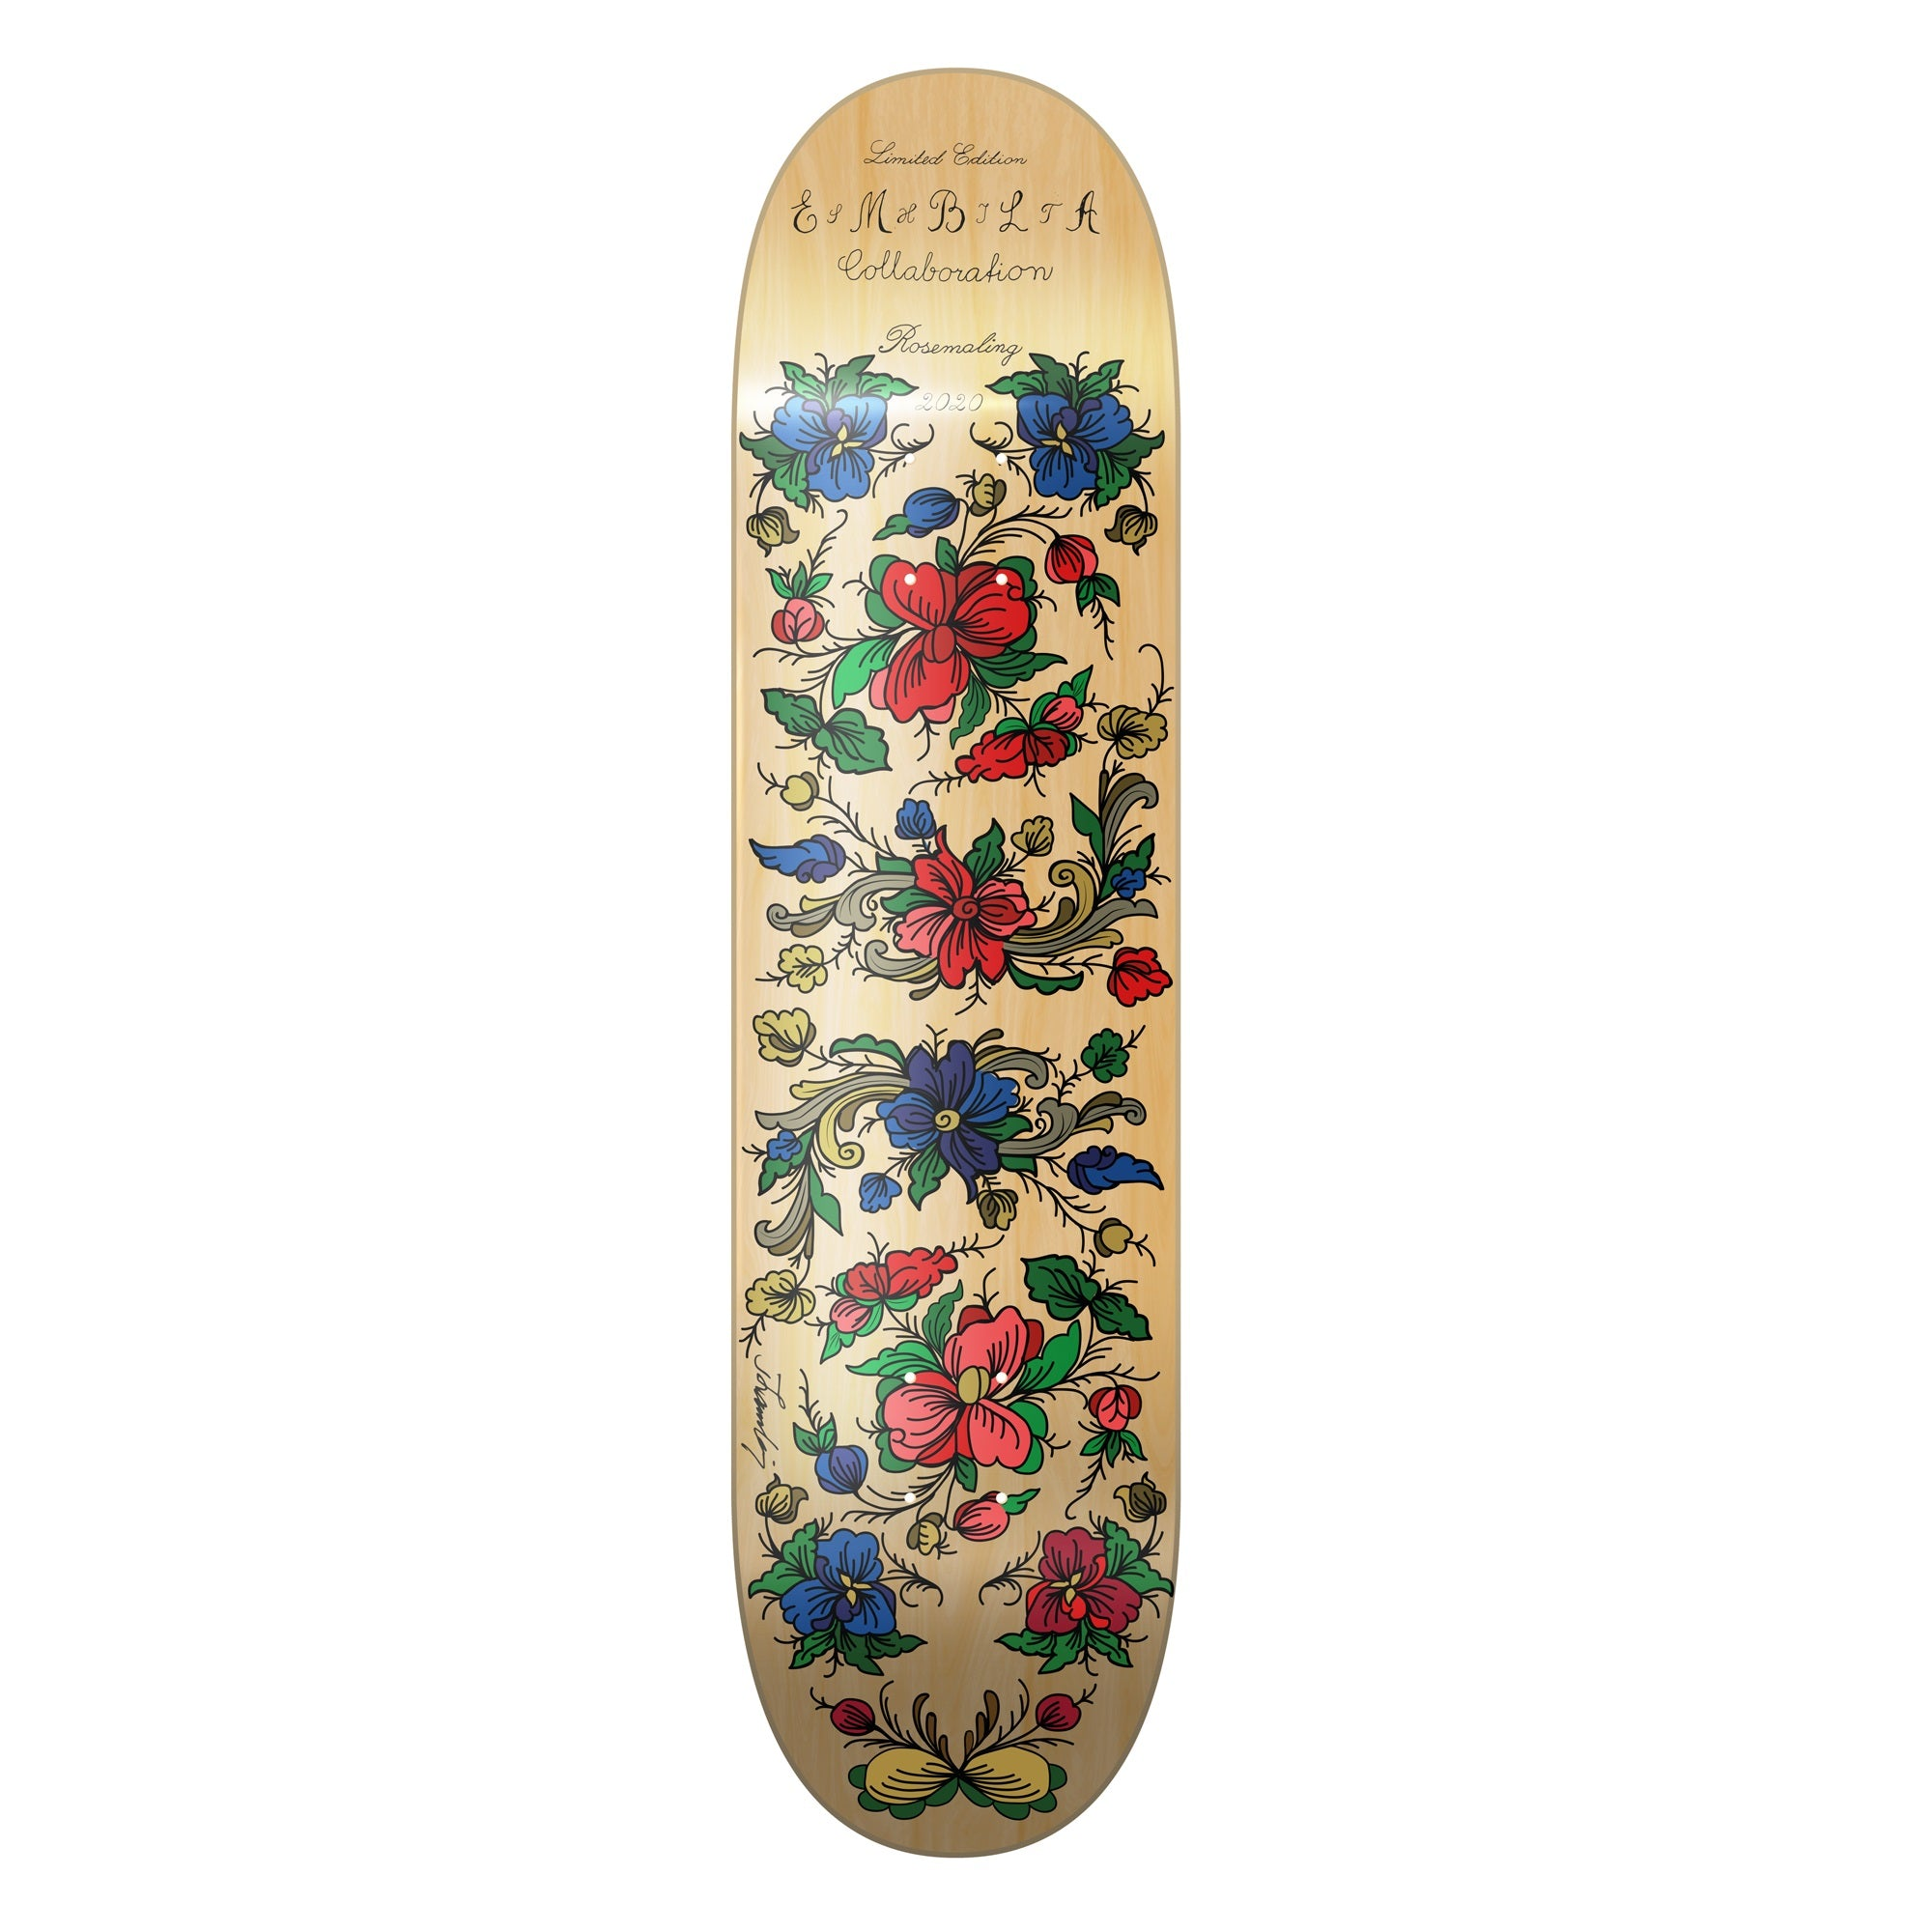 Shit Skateboard Company and  Embla Bunader Skateboard Rosemaling Design